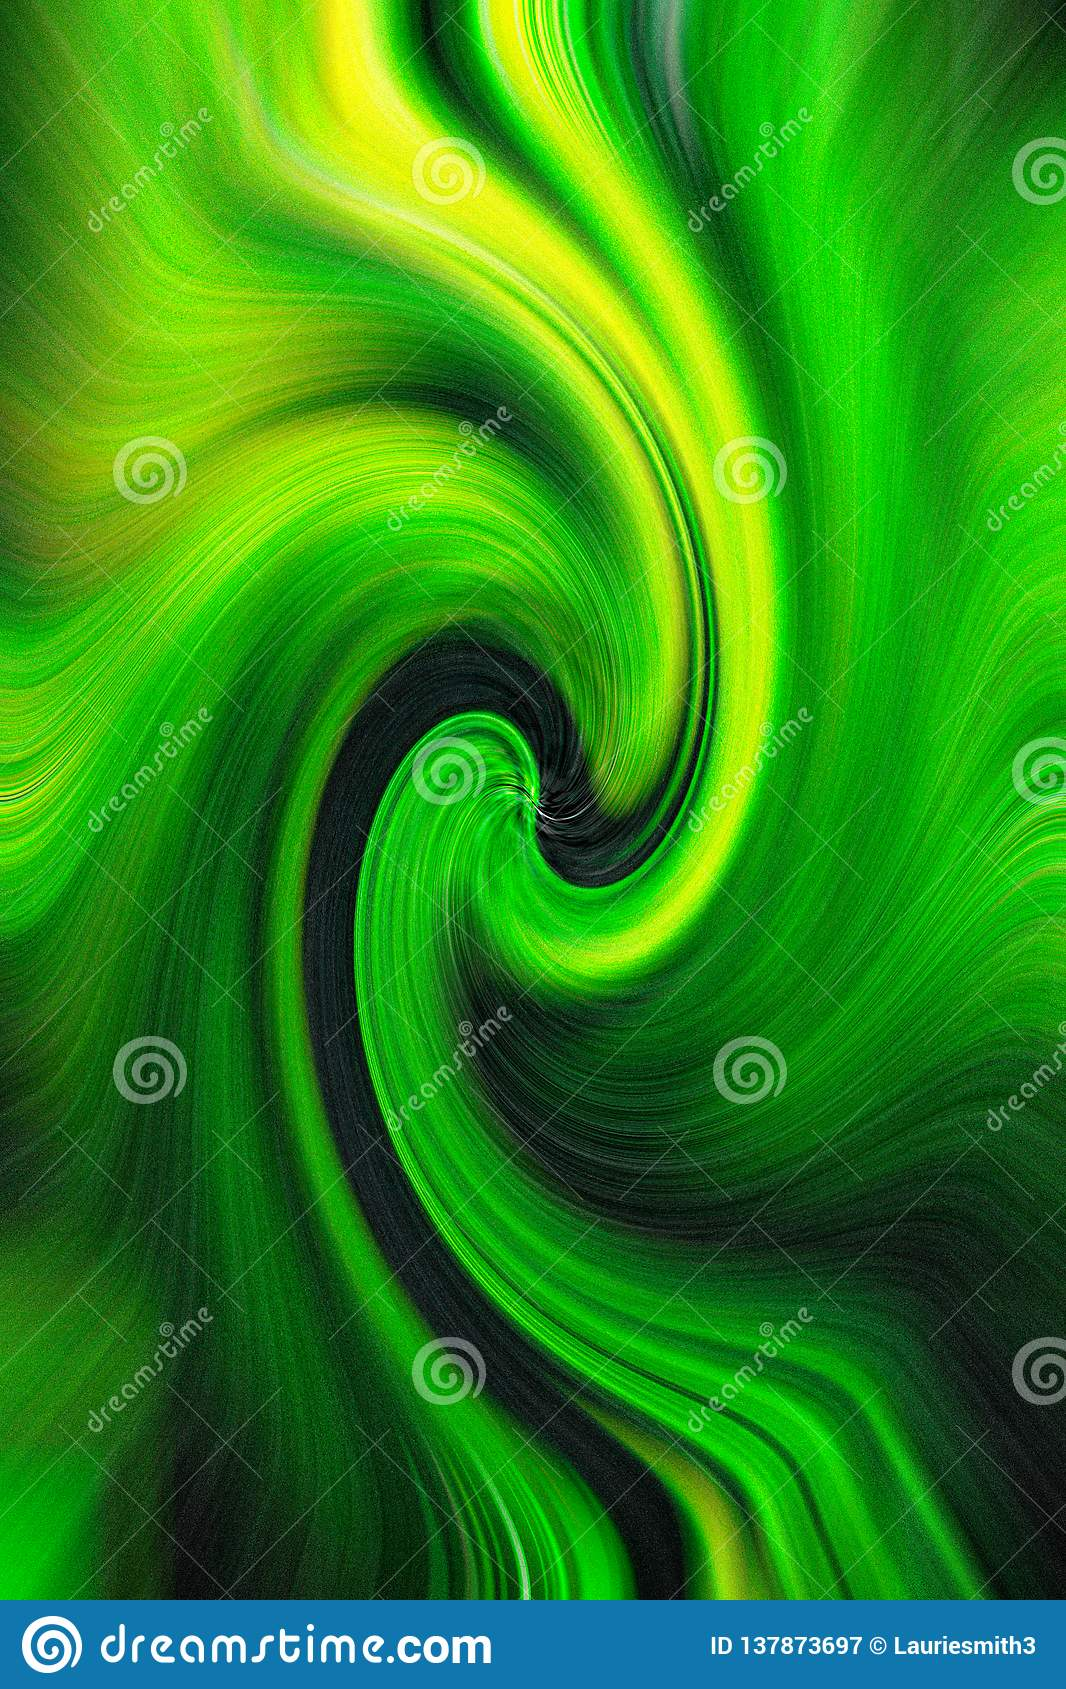 Subtle wave motion of black, yellow and green for background use